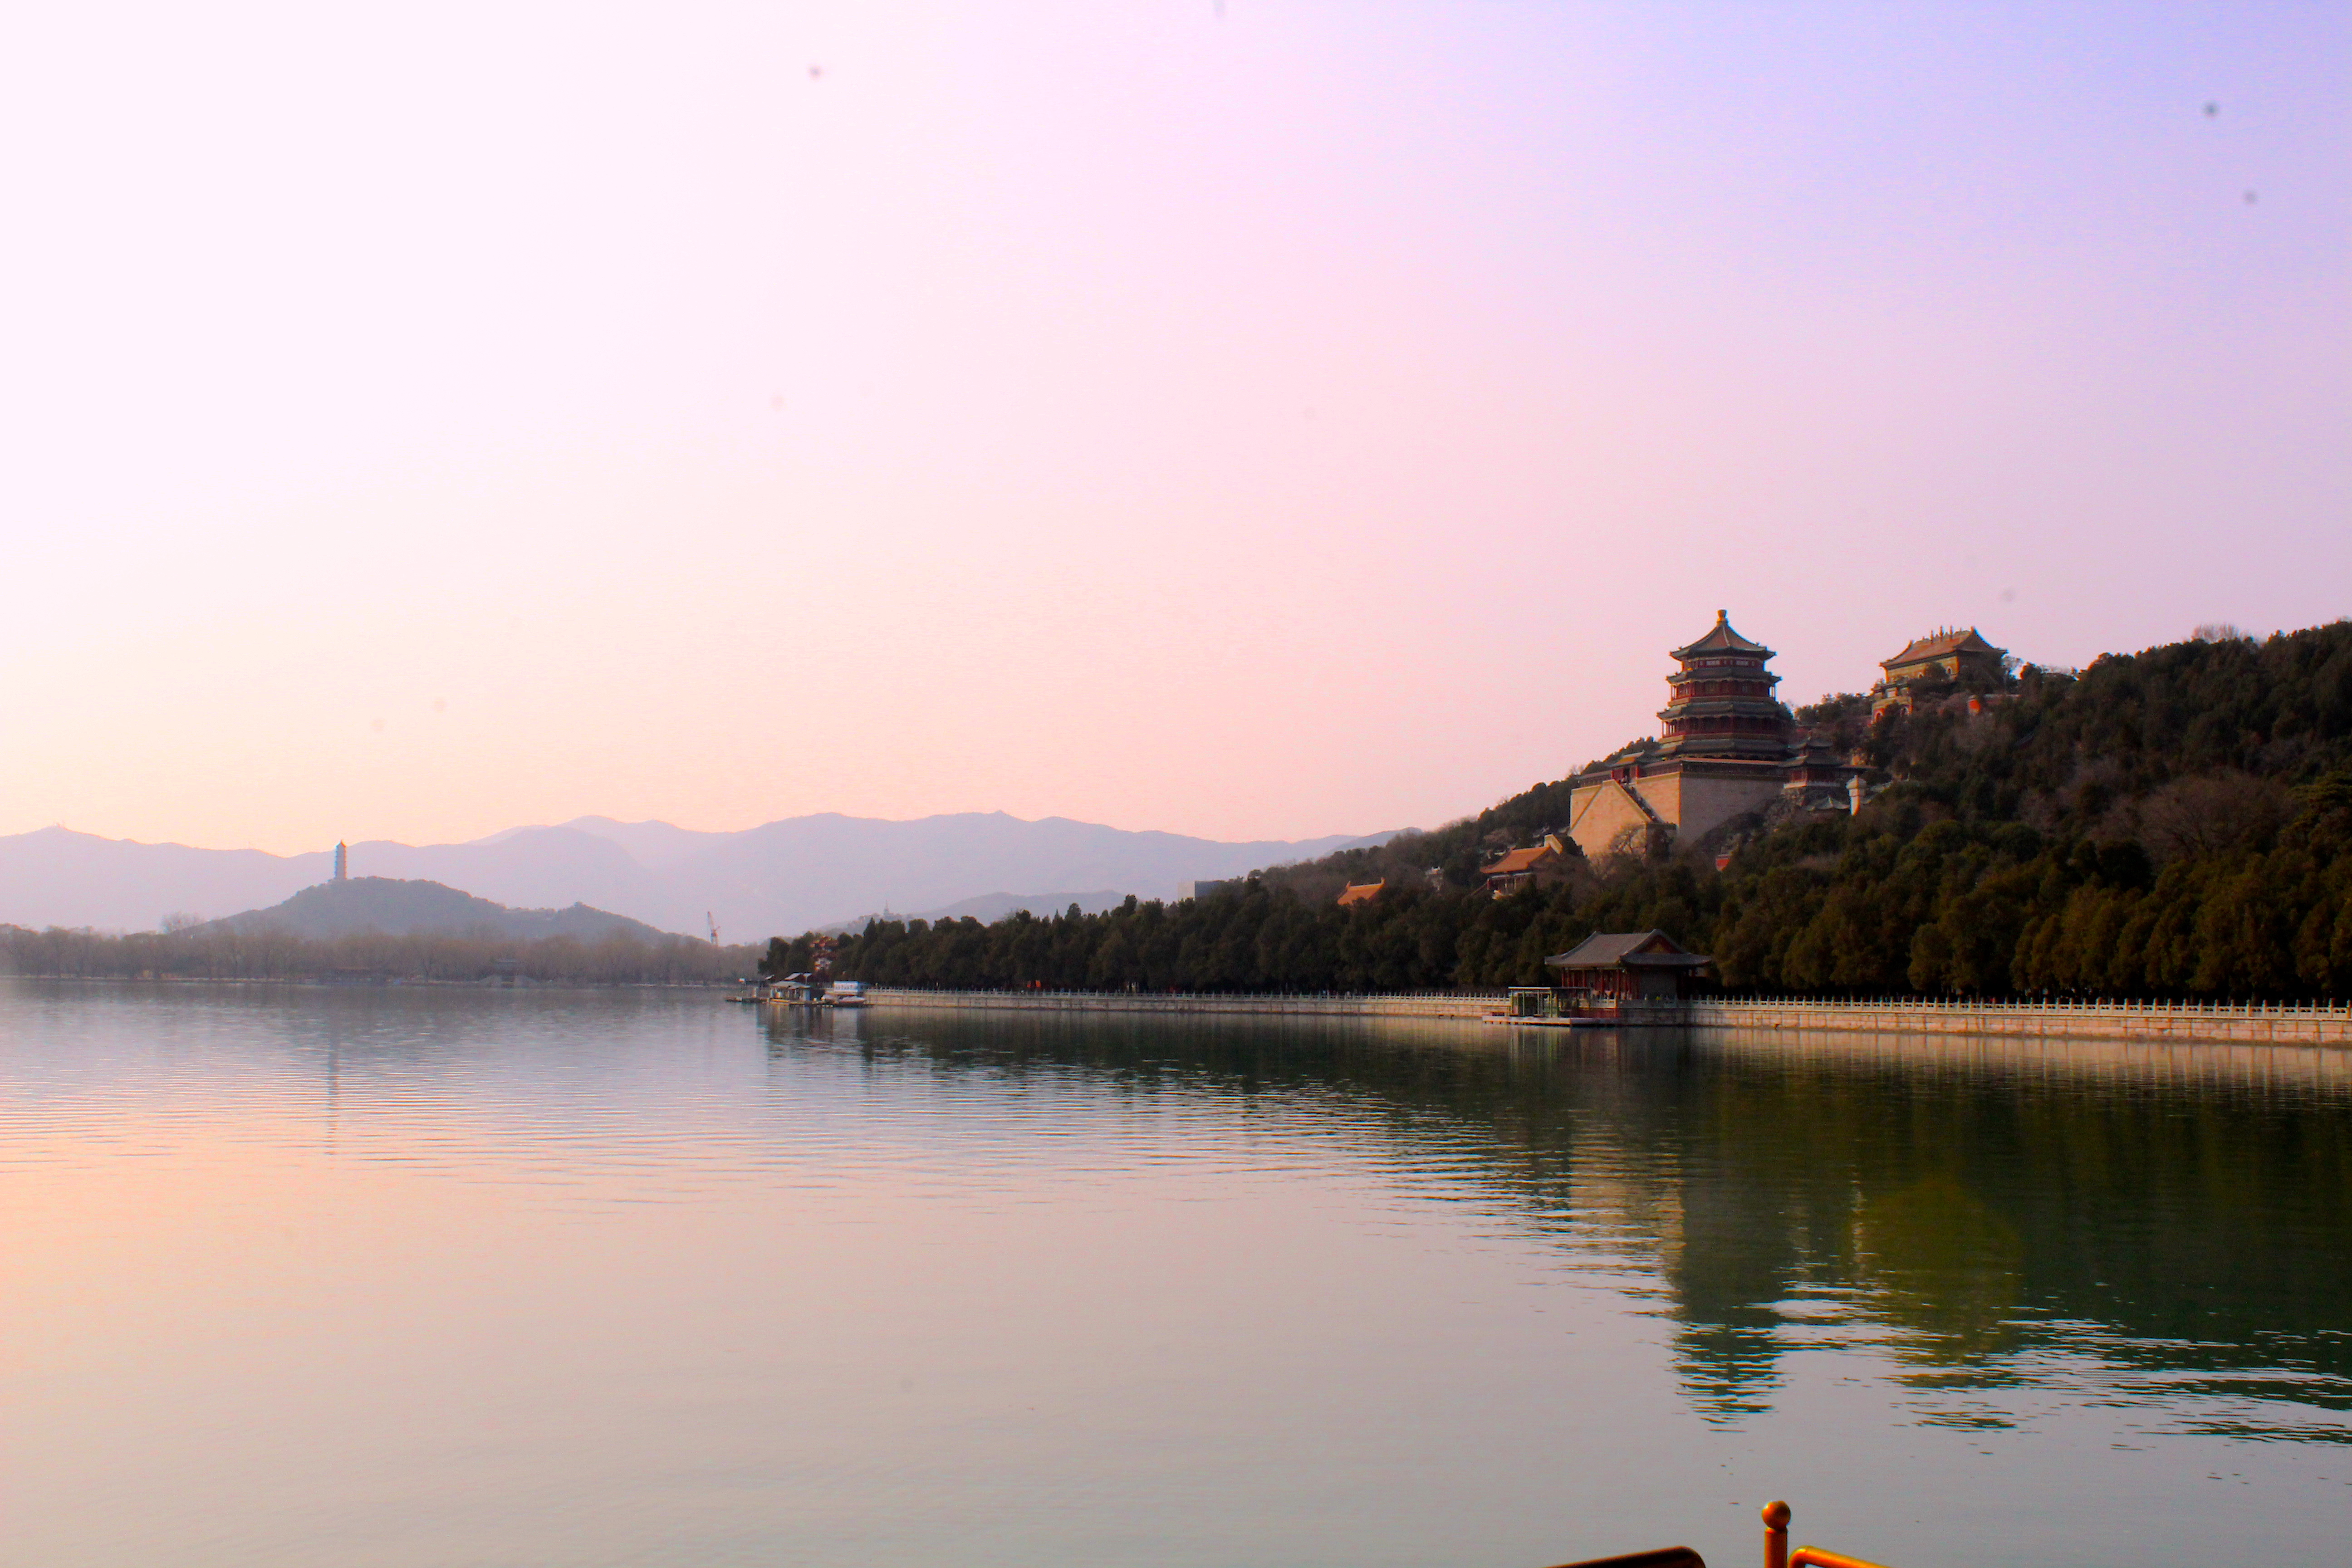 Image of Summer Palace buildings on lake, with reflections.